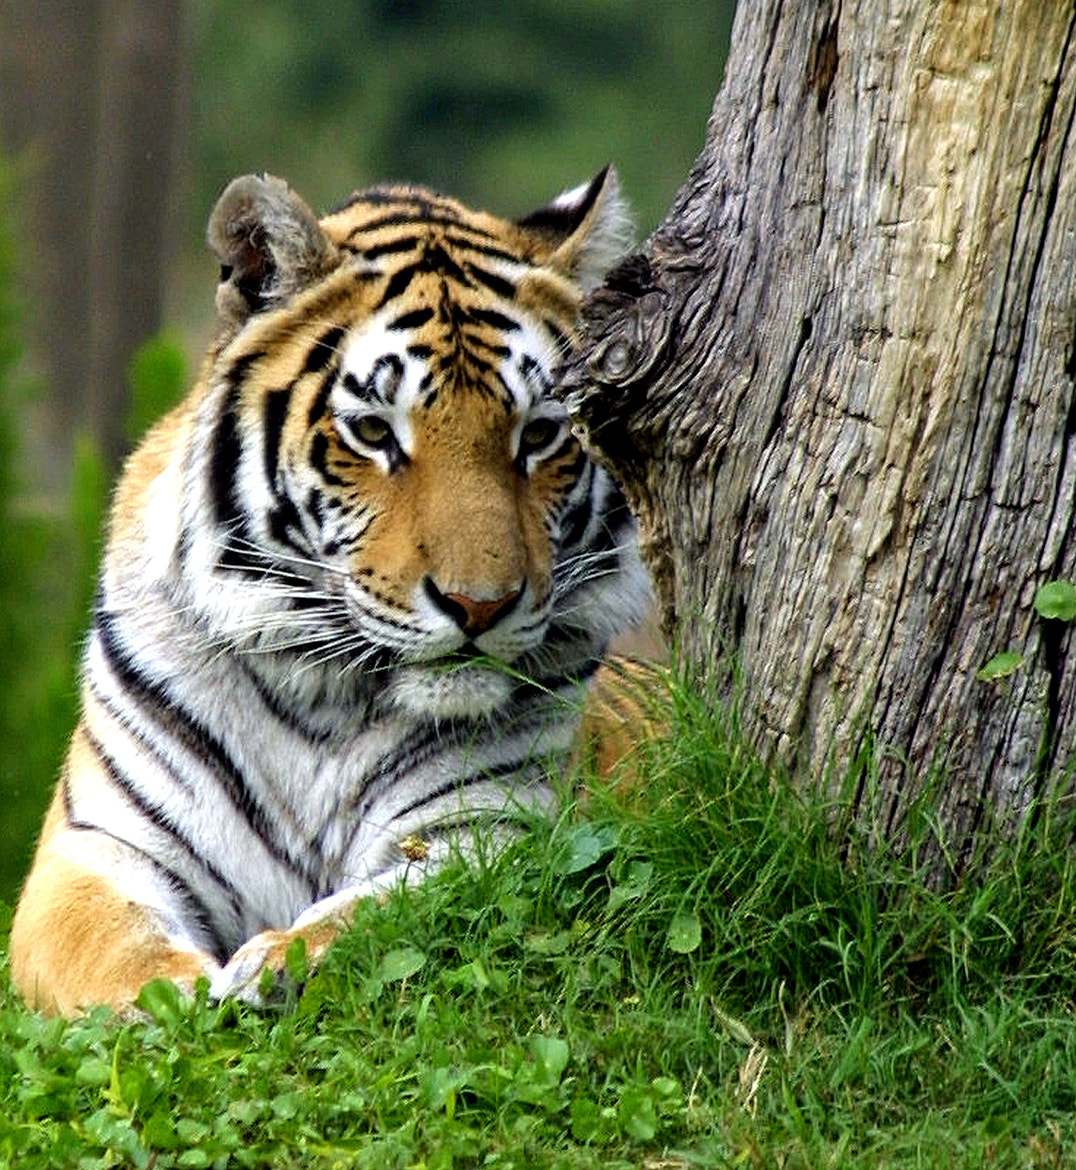 Photograph Bengal Tiger In Deep Thought (Captive) by George McGinn on 500px